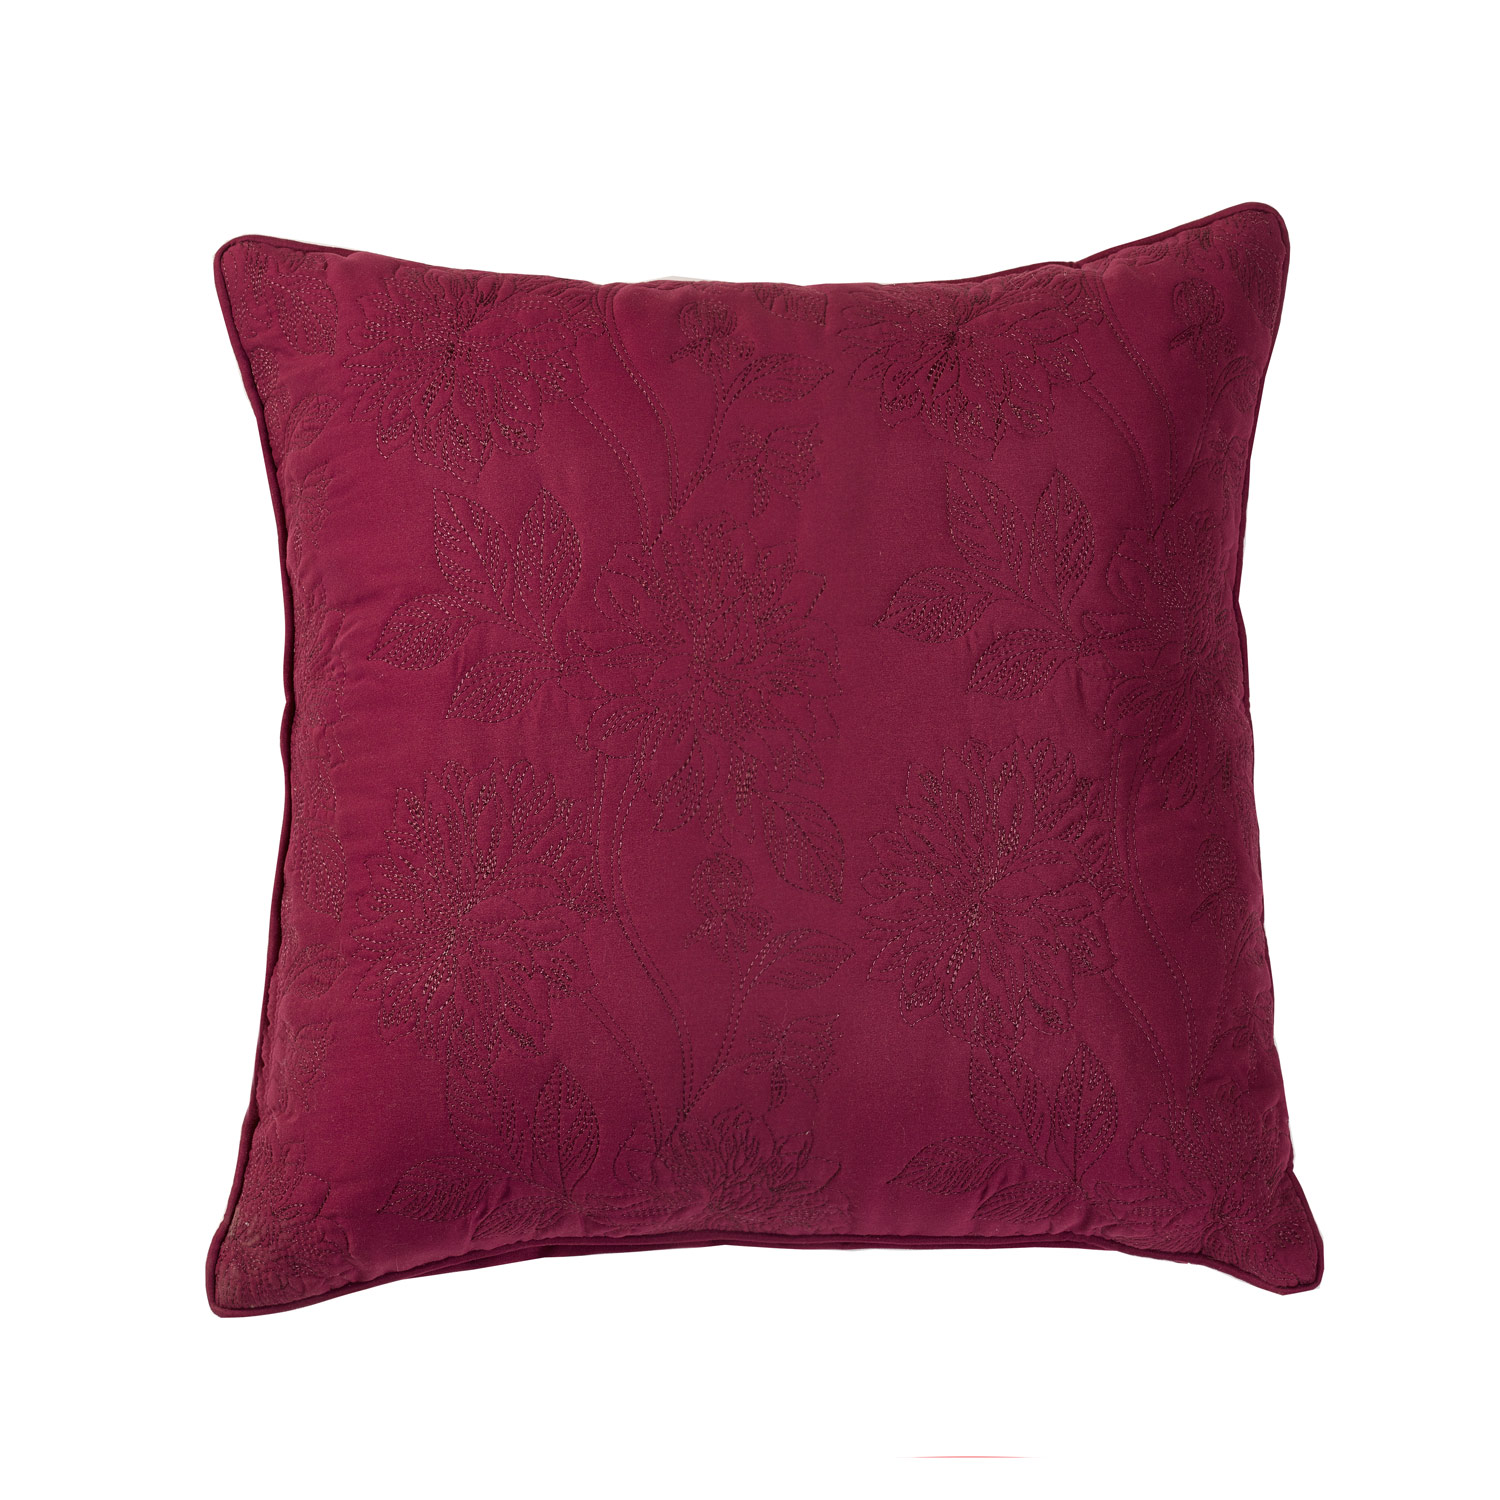 Annabelle Raspberry Filled Square Cushion